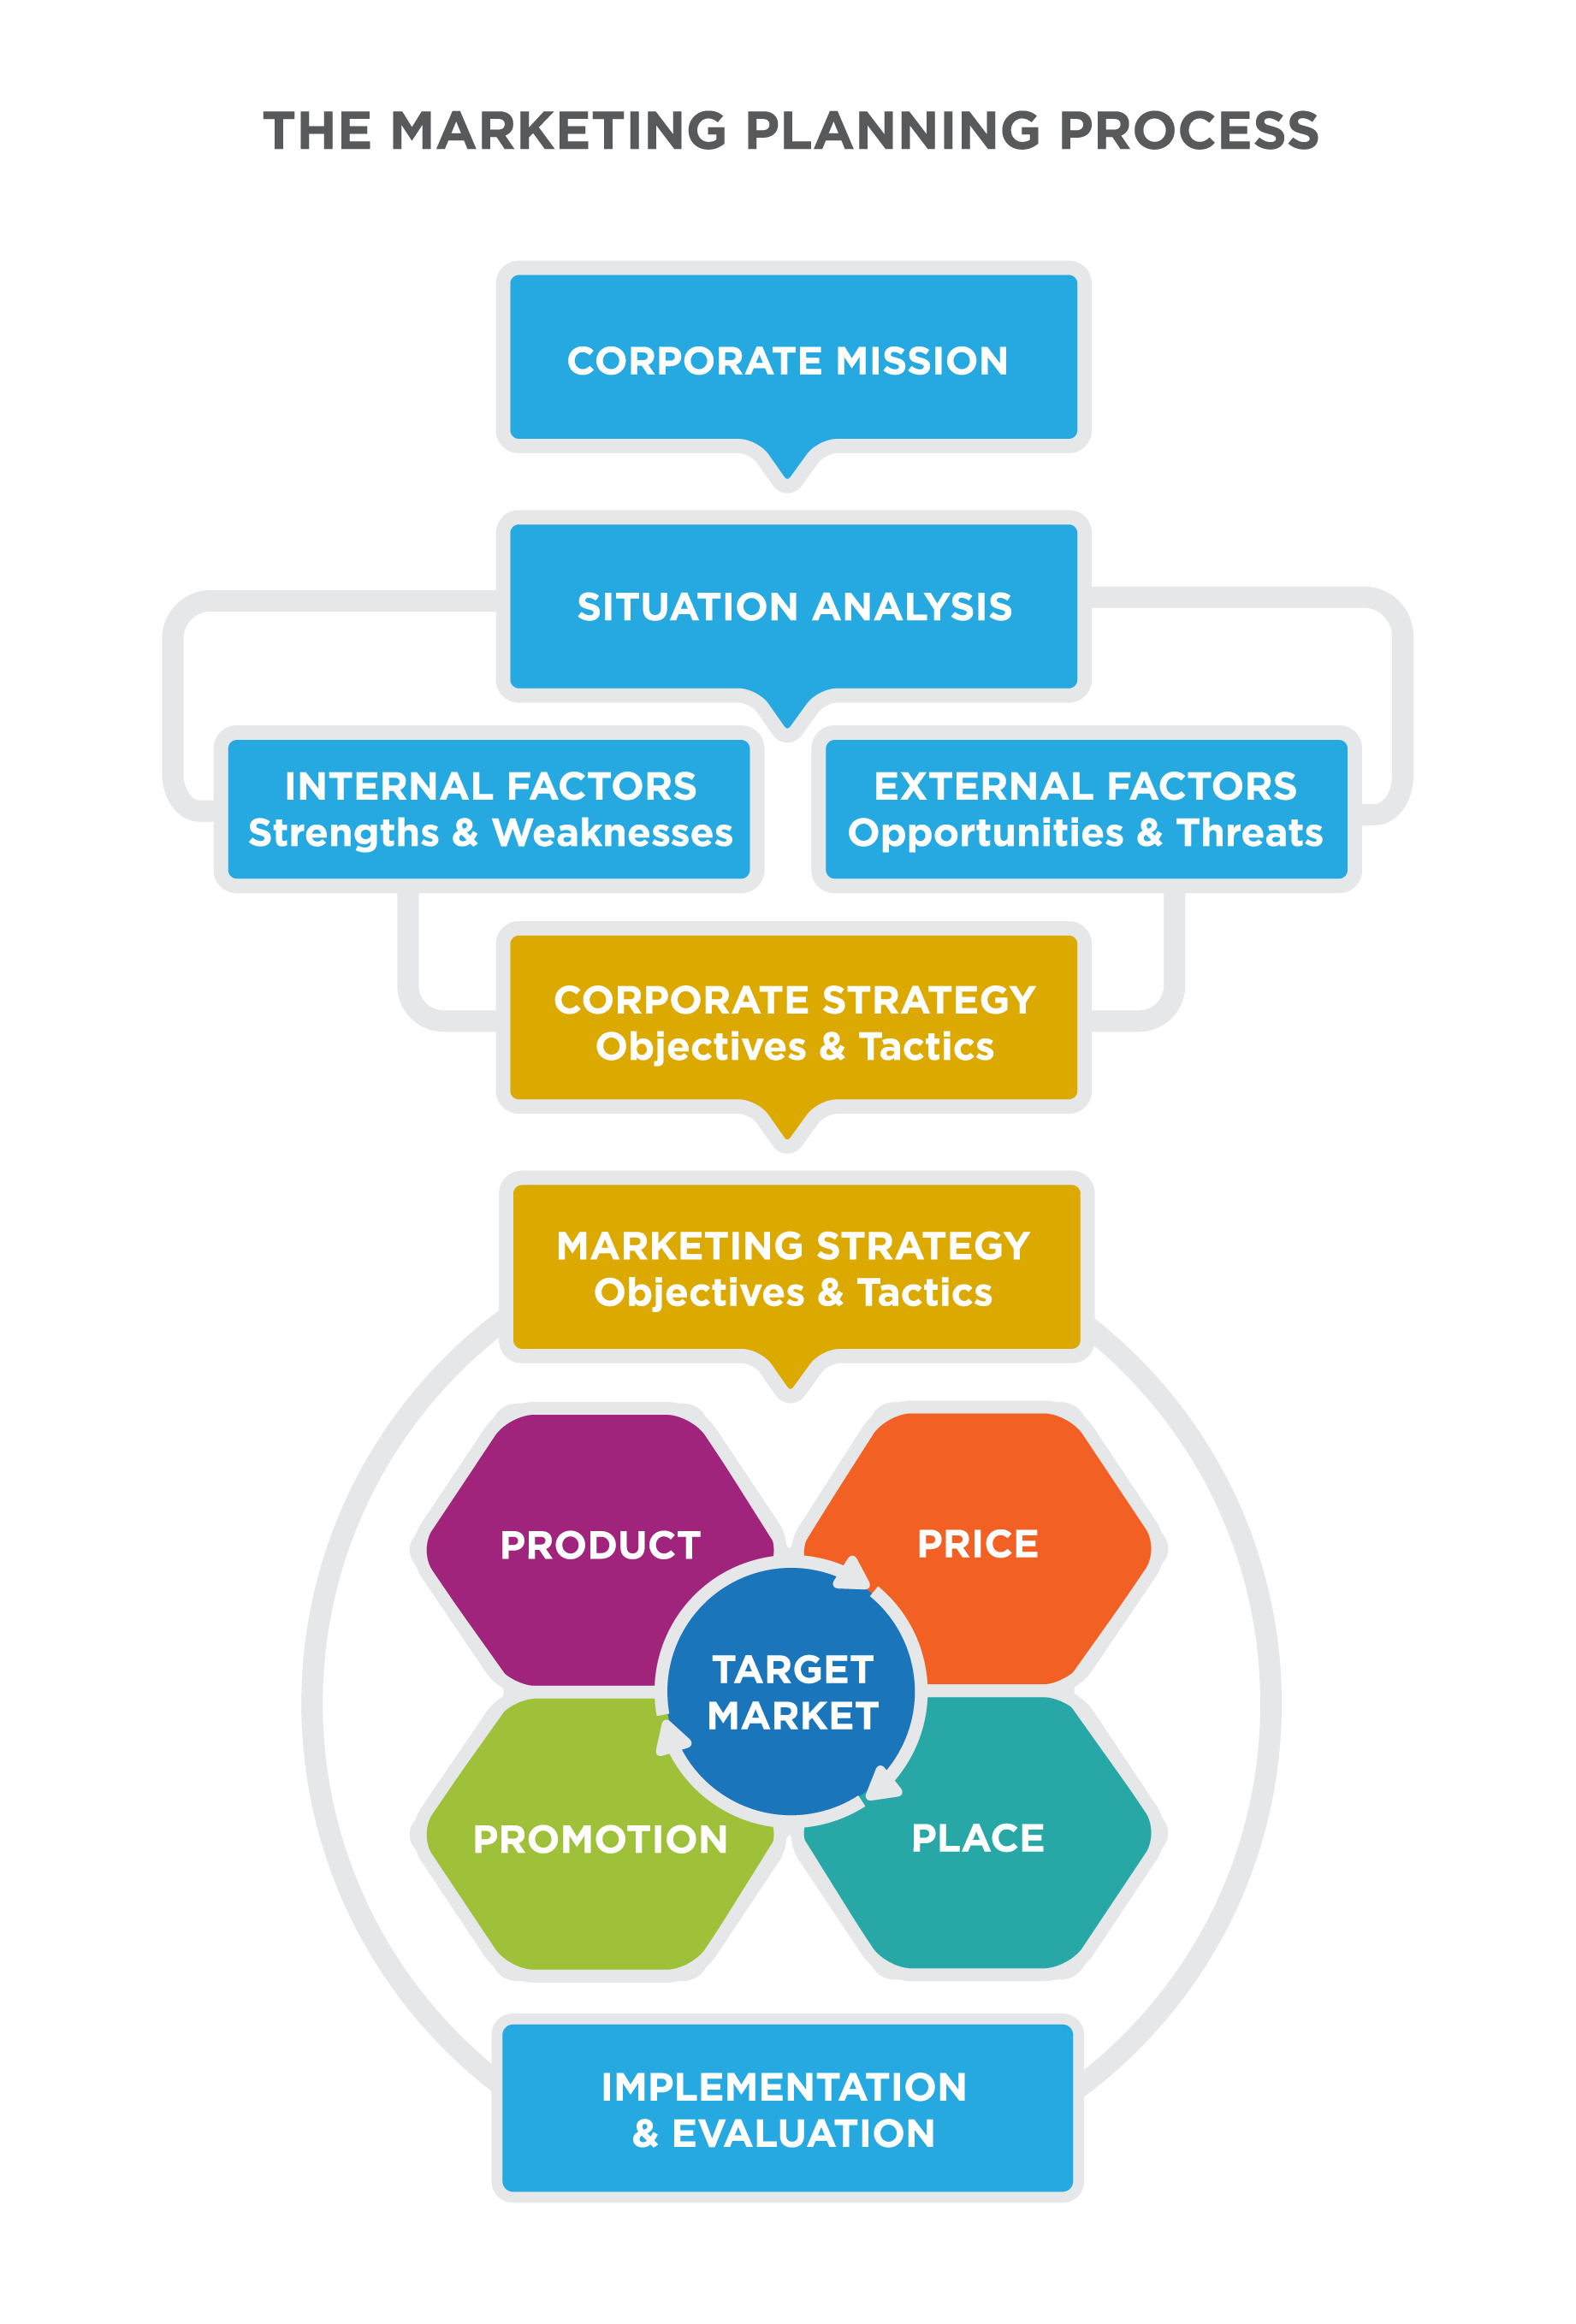 principles of marketing target New target market = new marketing mix is this target market viable  introducing the all new 2nd edition of the practical marketing workbook.